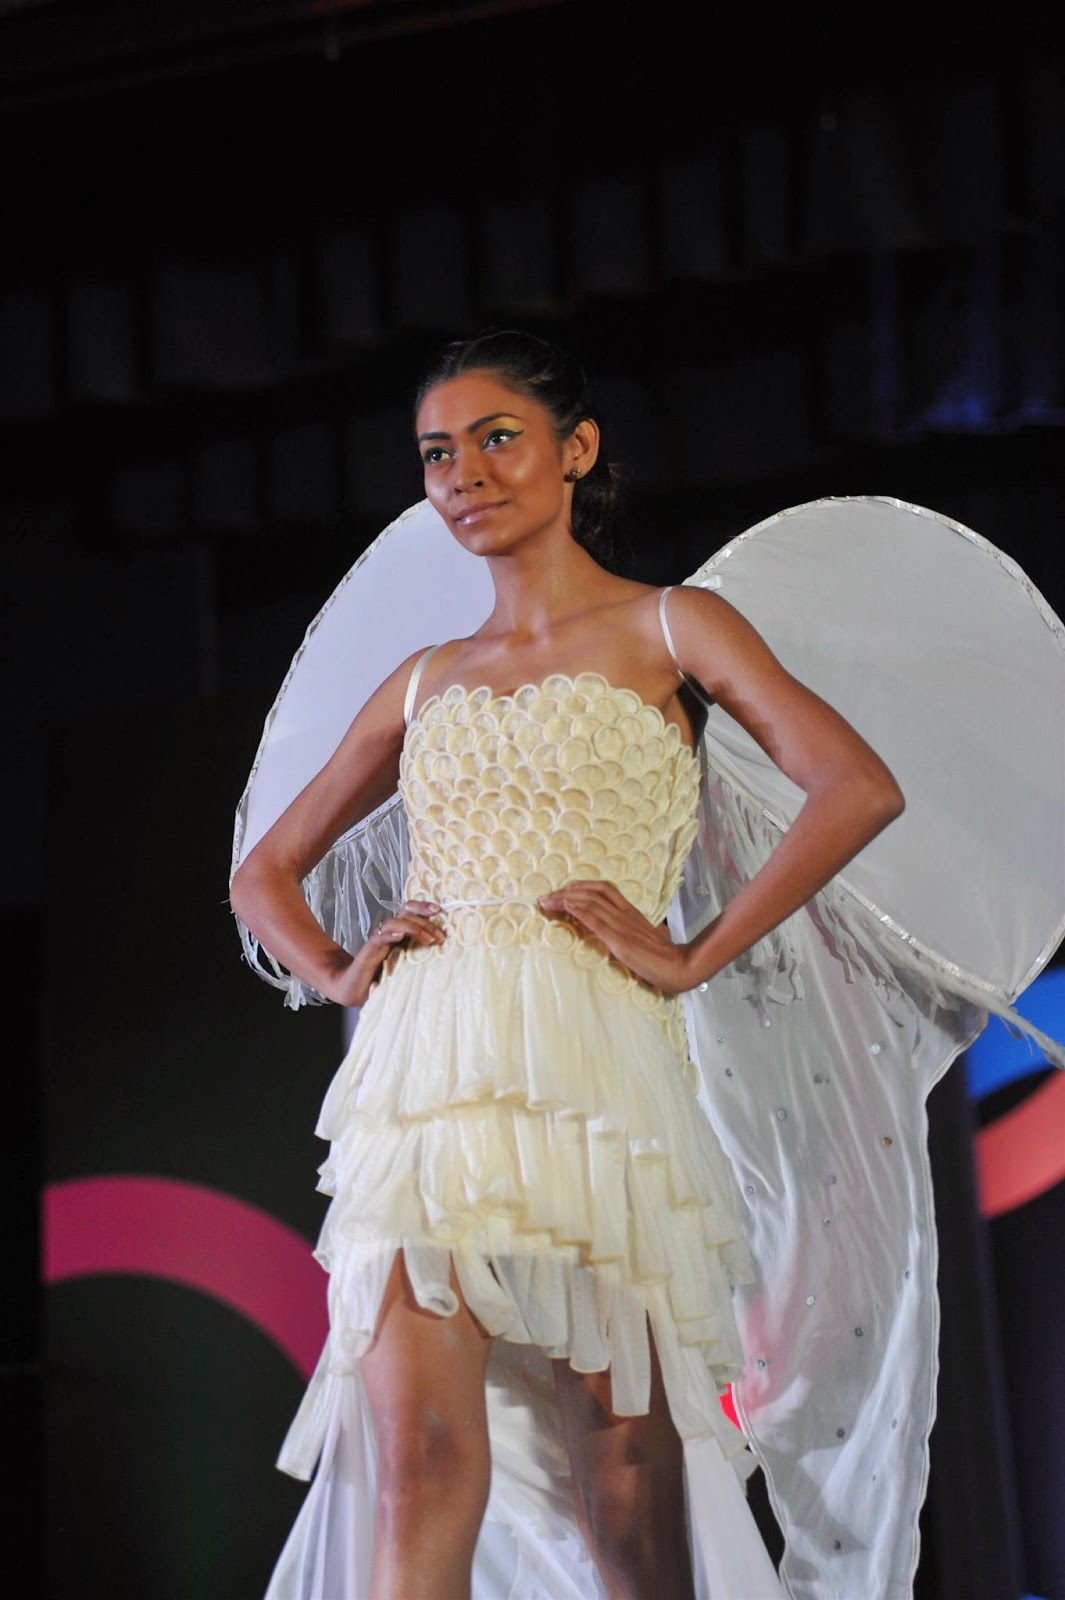 Malavikas Mumbaistan: Fairy tales and Mumbai fashion show mms